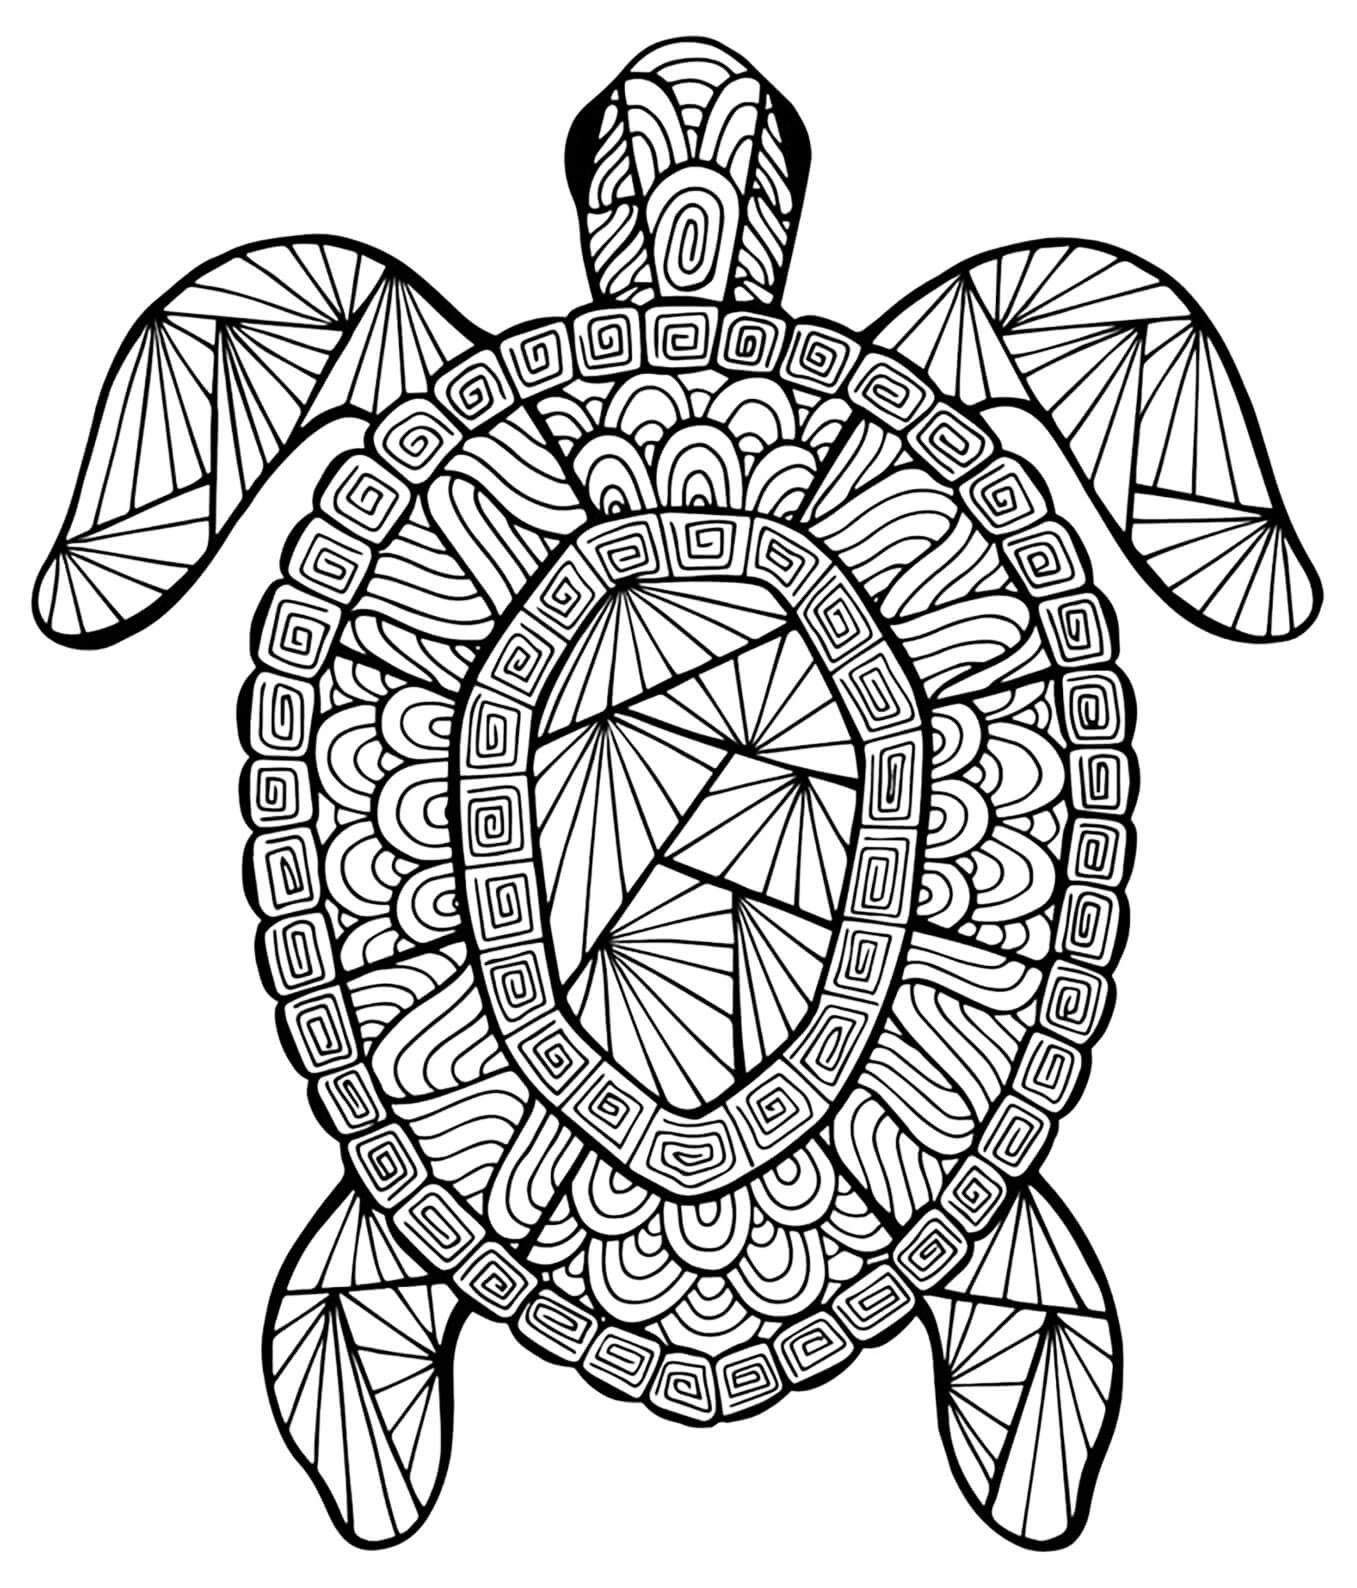 coloring page hard difficult coloring pages for adults free printable coloring page hard